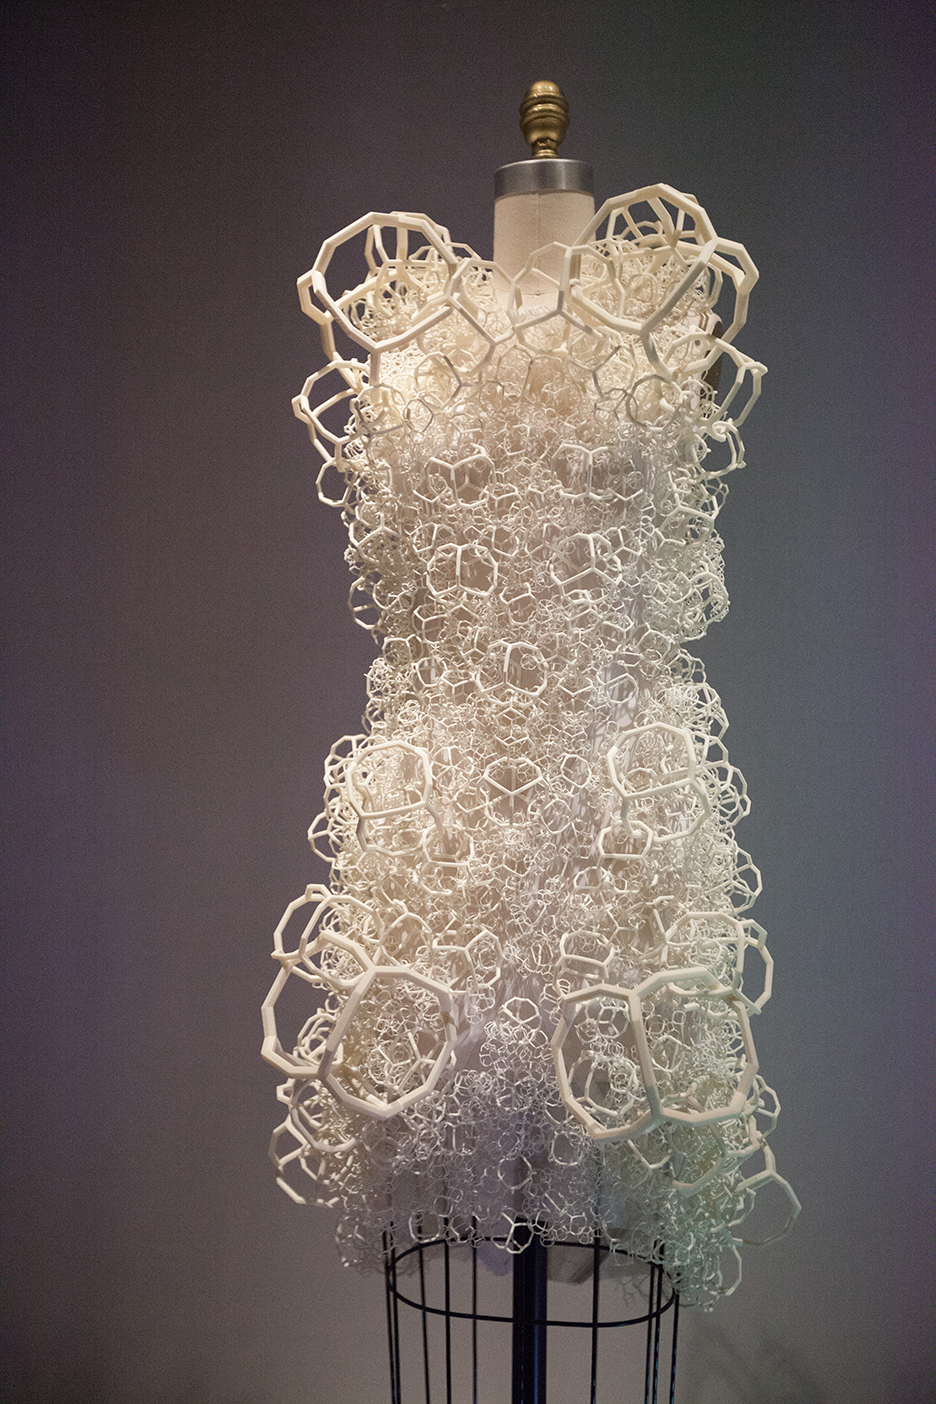 BAHAI 3-D-printed Fractal weave dress - with six degrees of fractal growth.